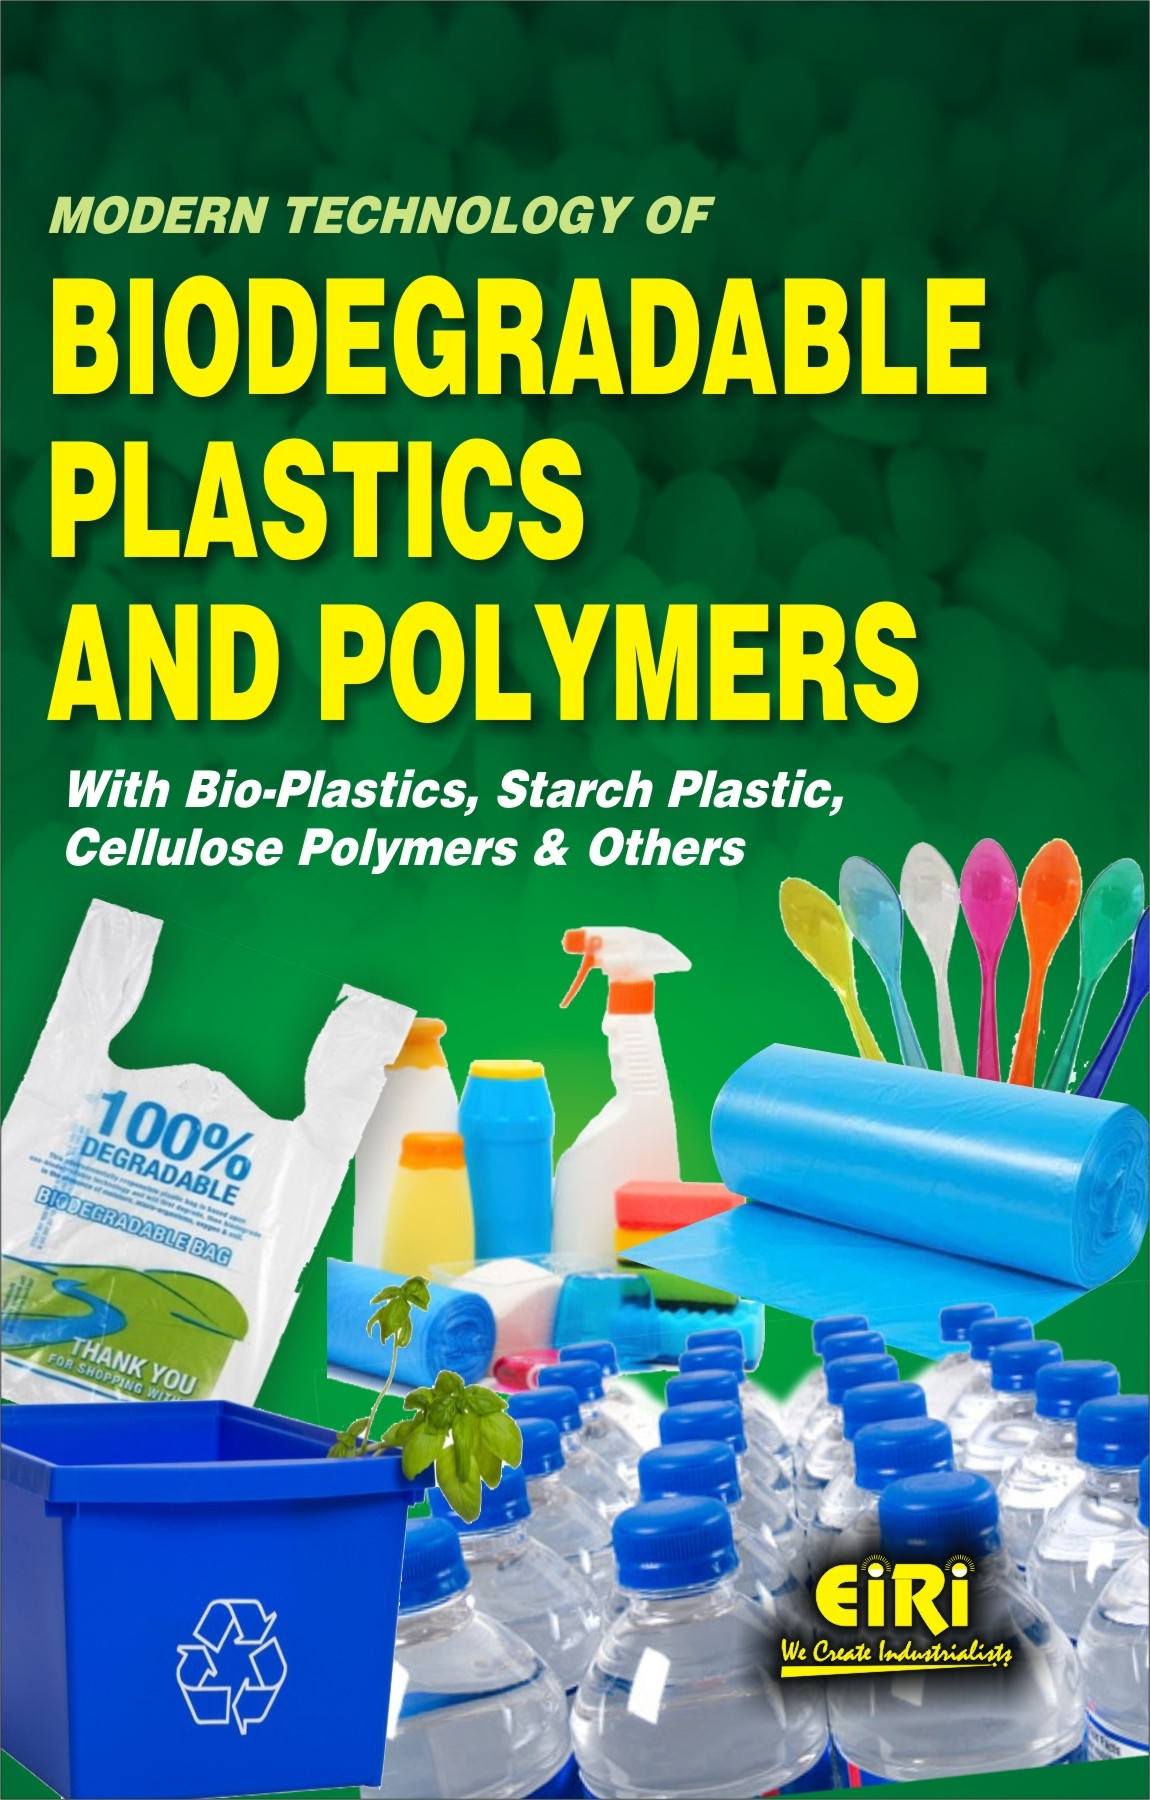 How to start a biodegradable plastic manufacturing company